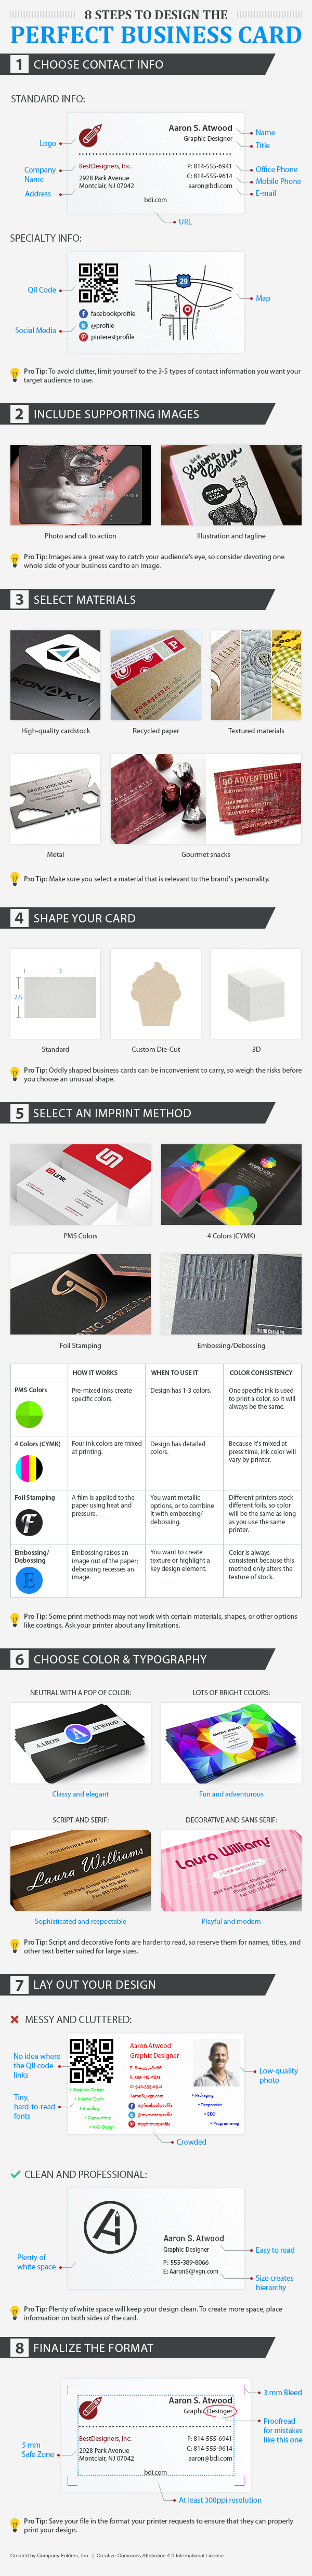 Infographic: 8 Steps to Design The Perfect Business Card